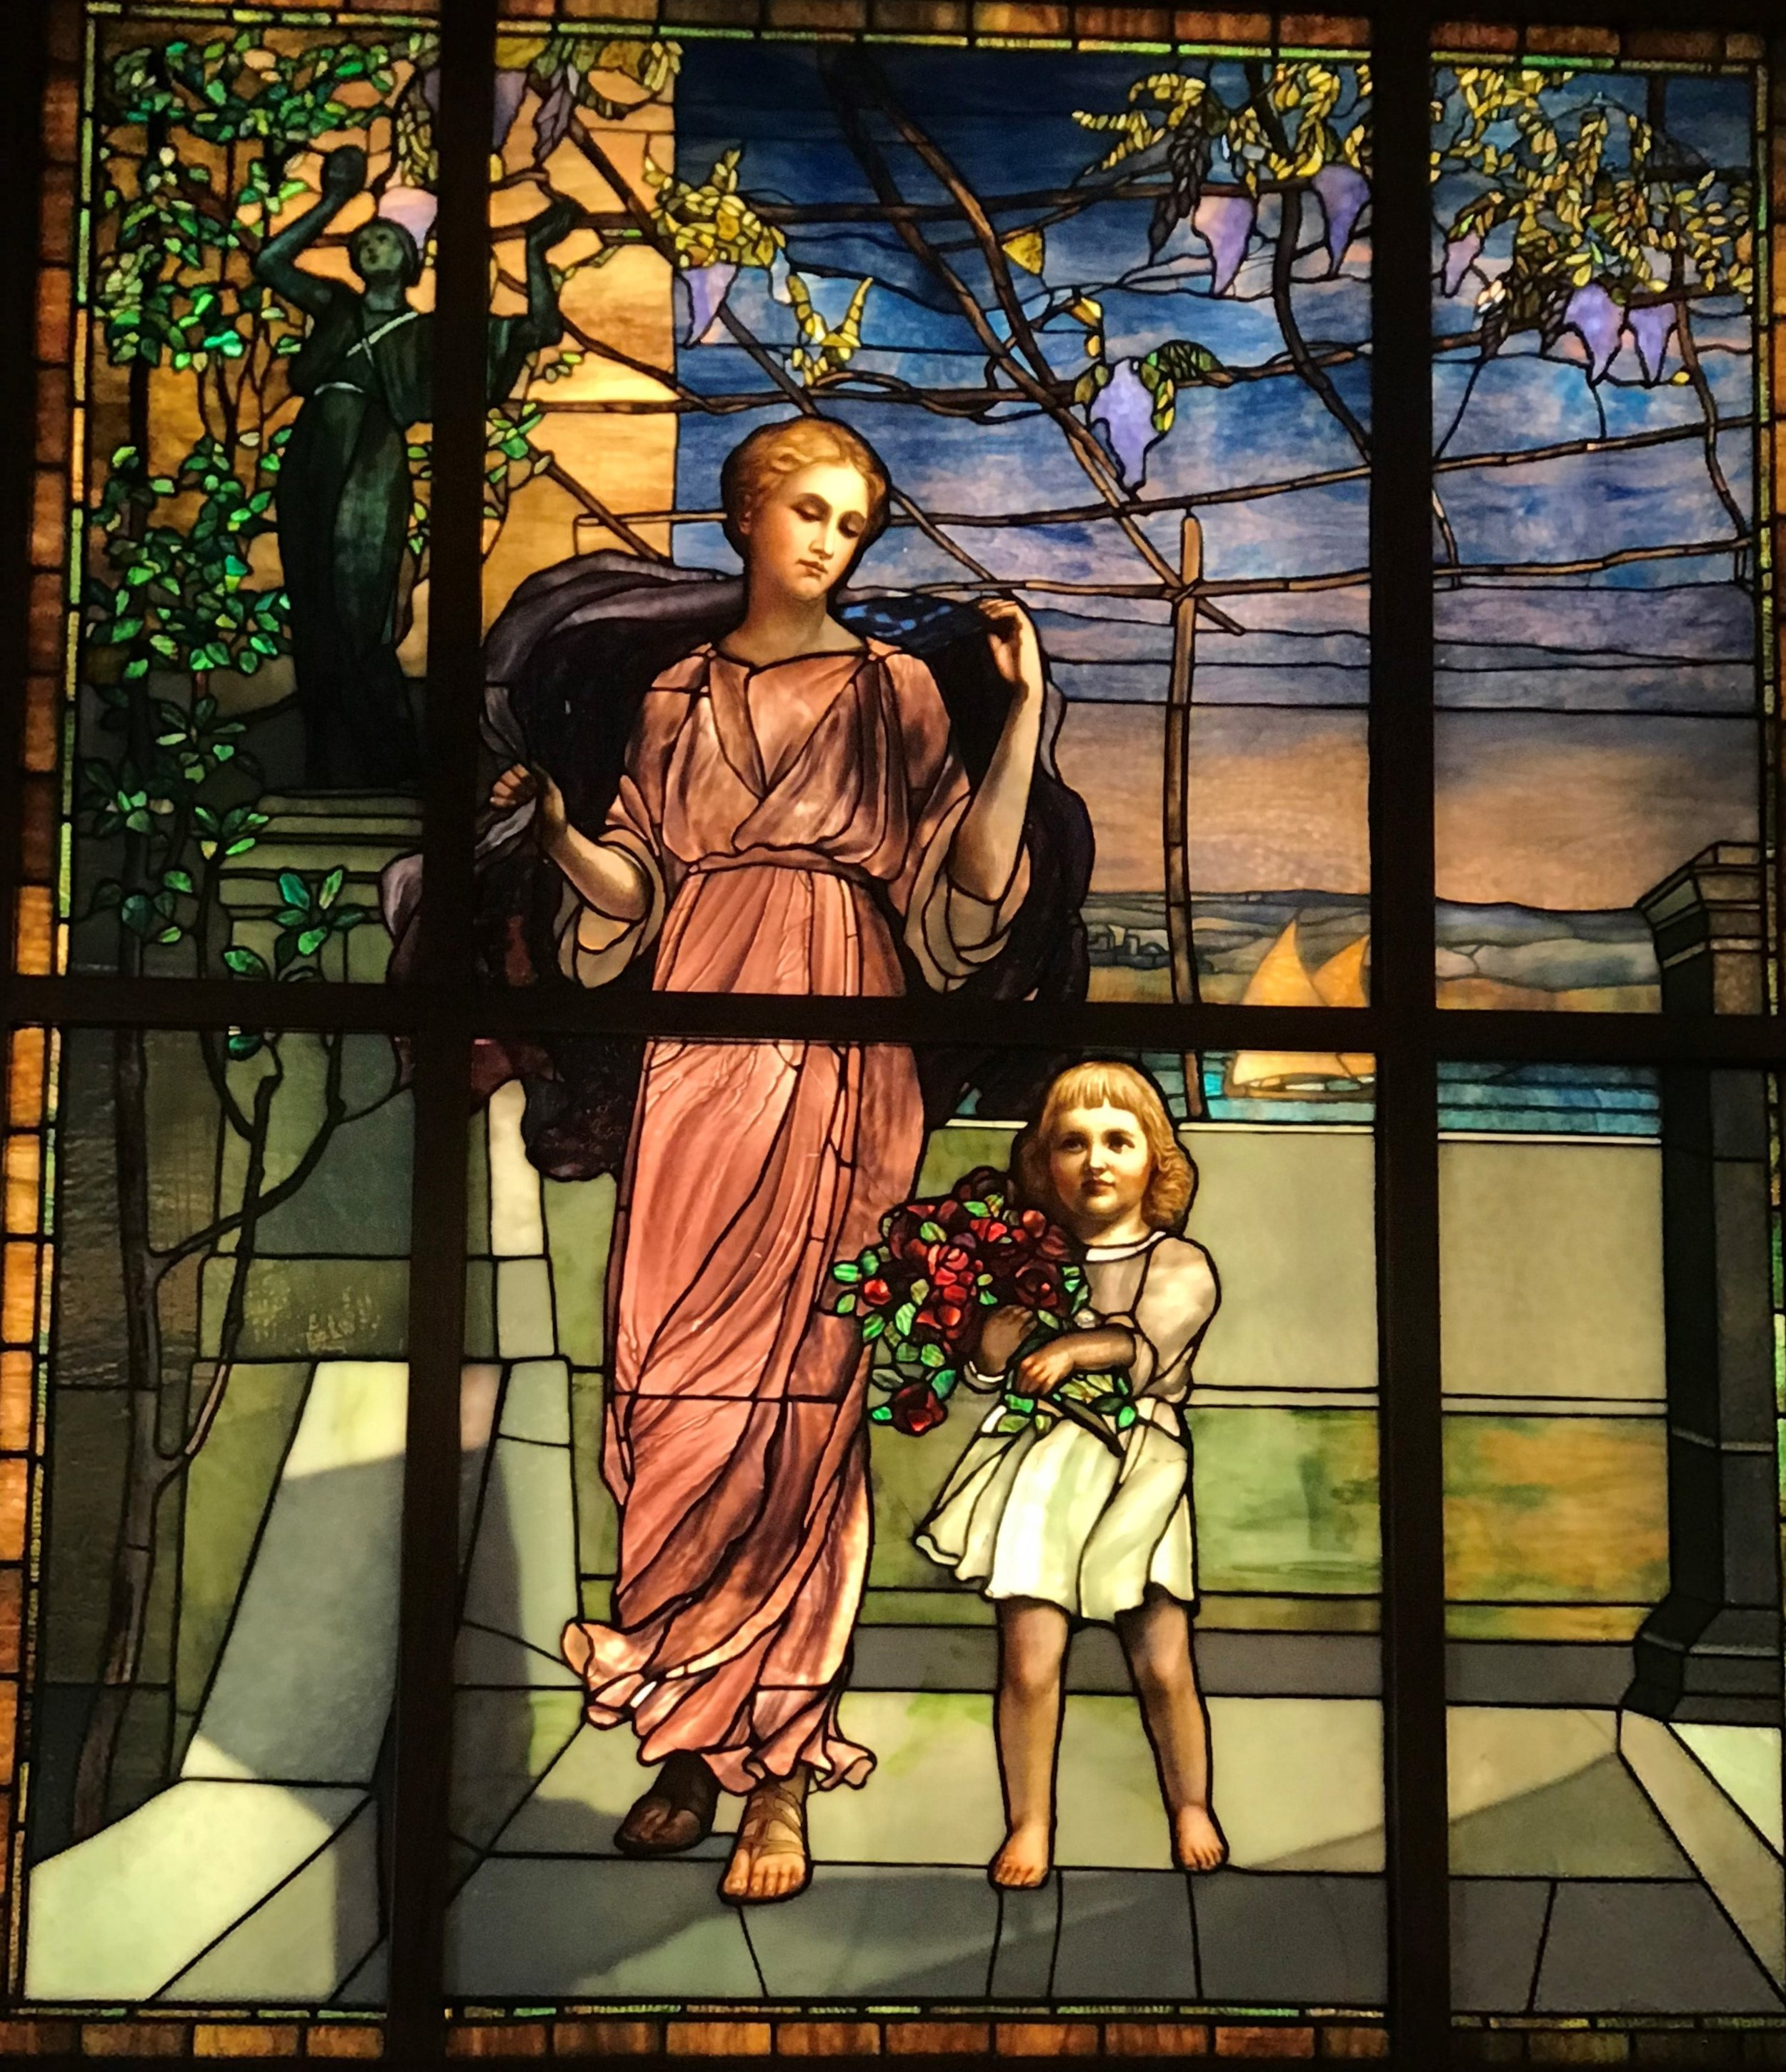 The Halim Museum of Time and Glass includes this window by Louis Comfort Tiffany, it's Cameel Halim's favorite window in the collection